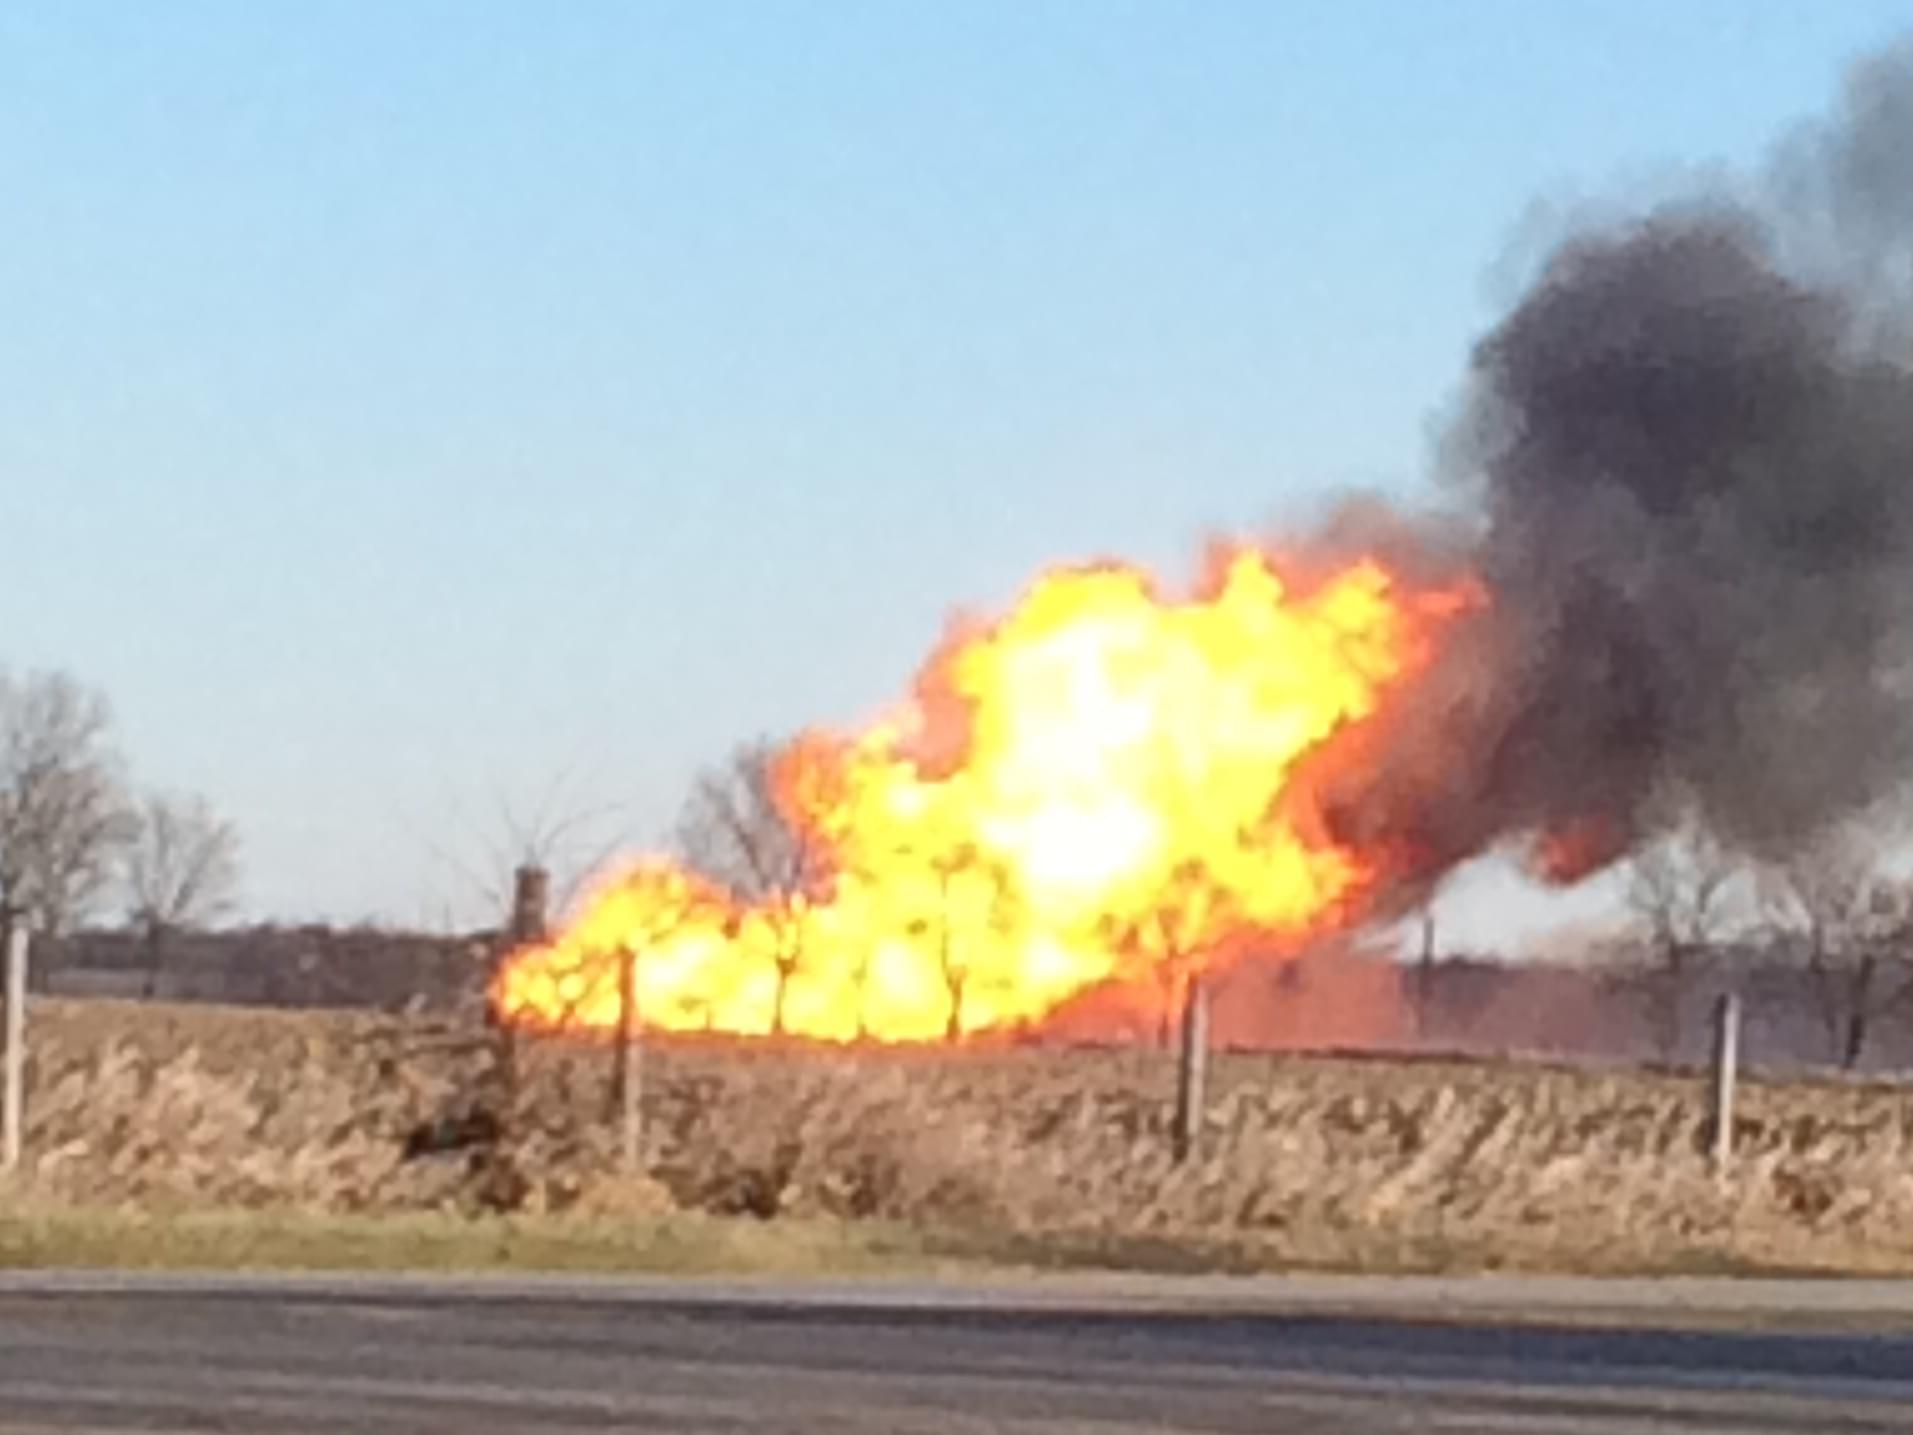 Human Error Deemed Cause for Deadly Pipeline Accident